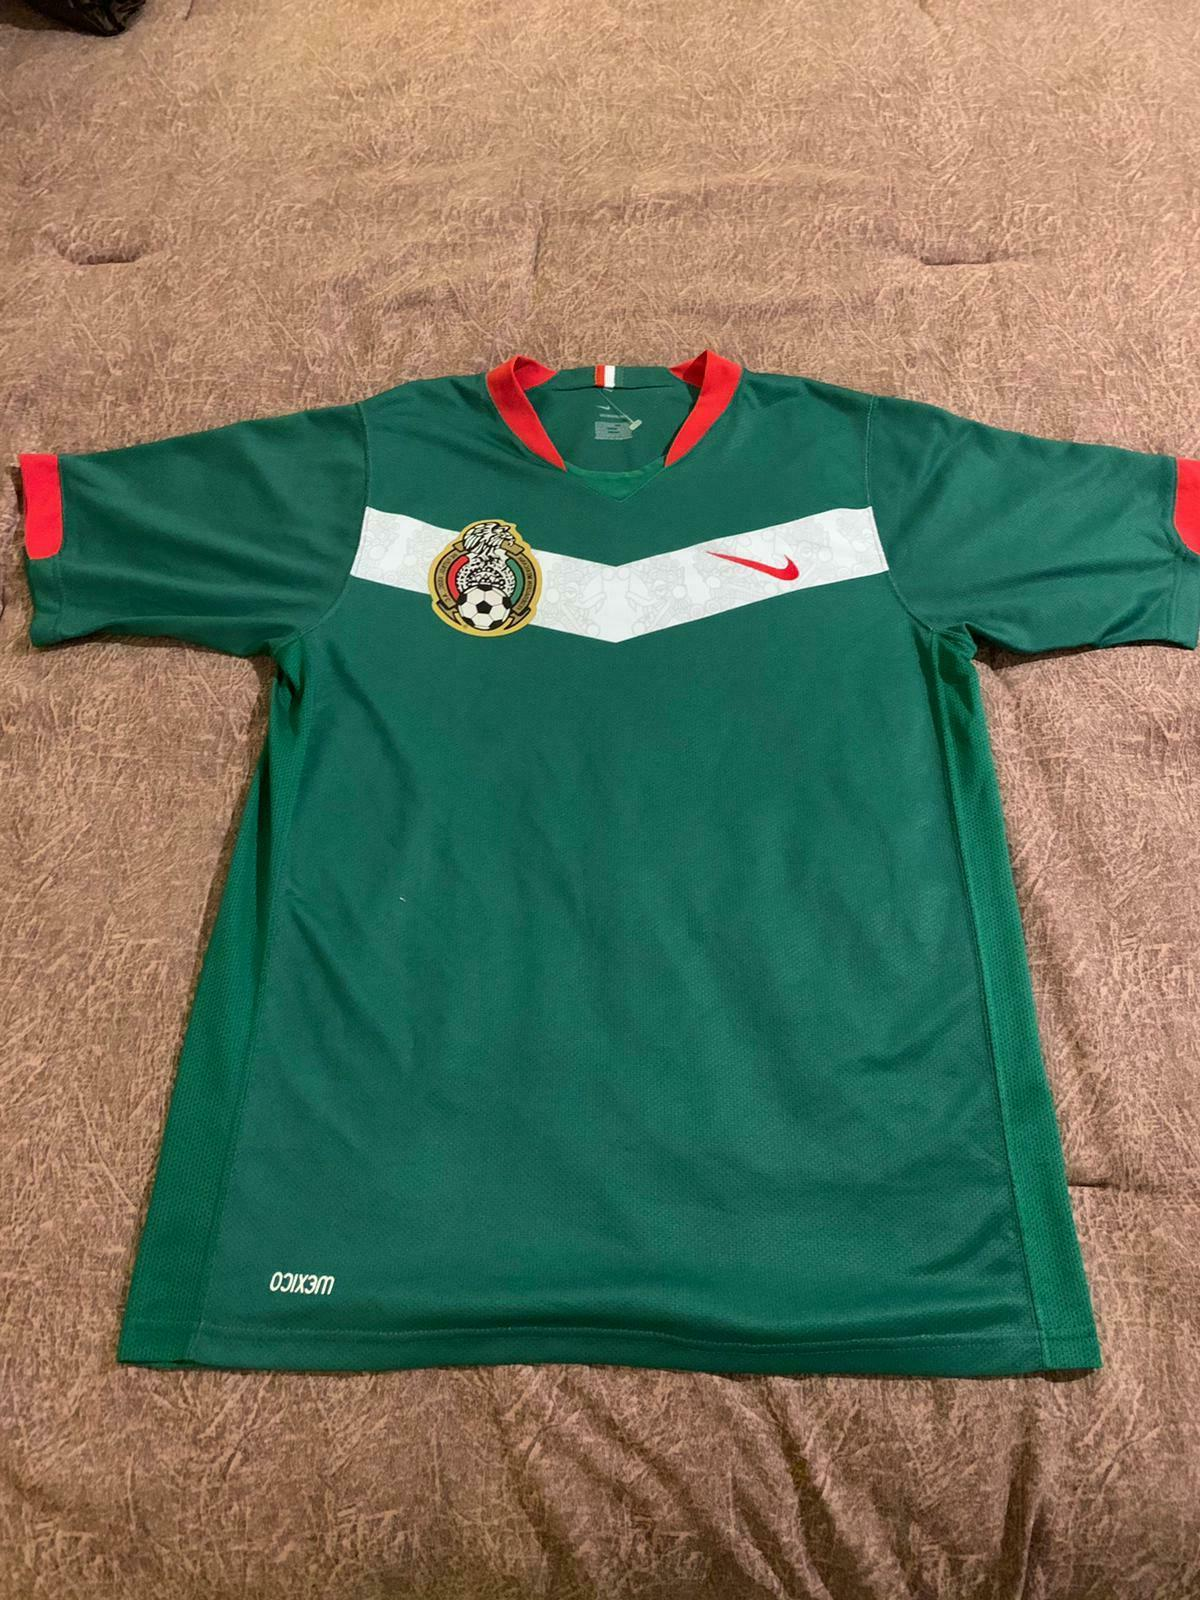 authentic mexico 2006 world cup futbol soccer